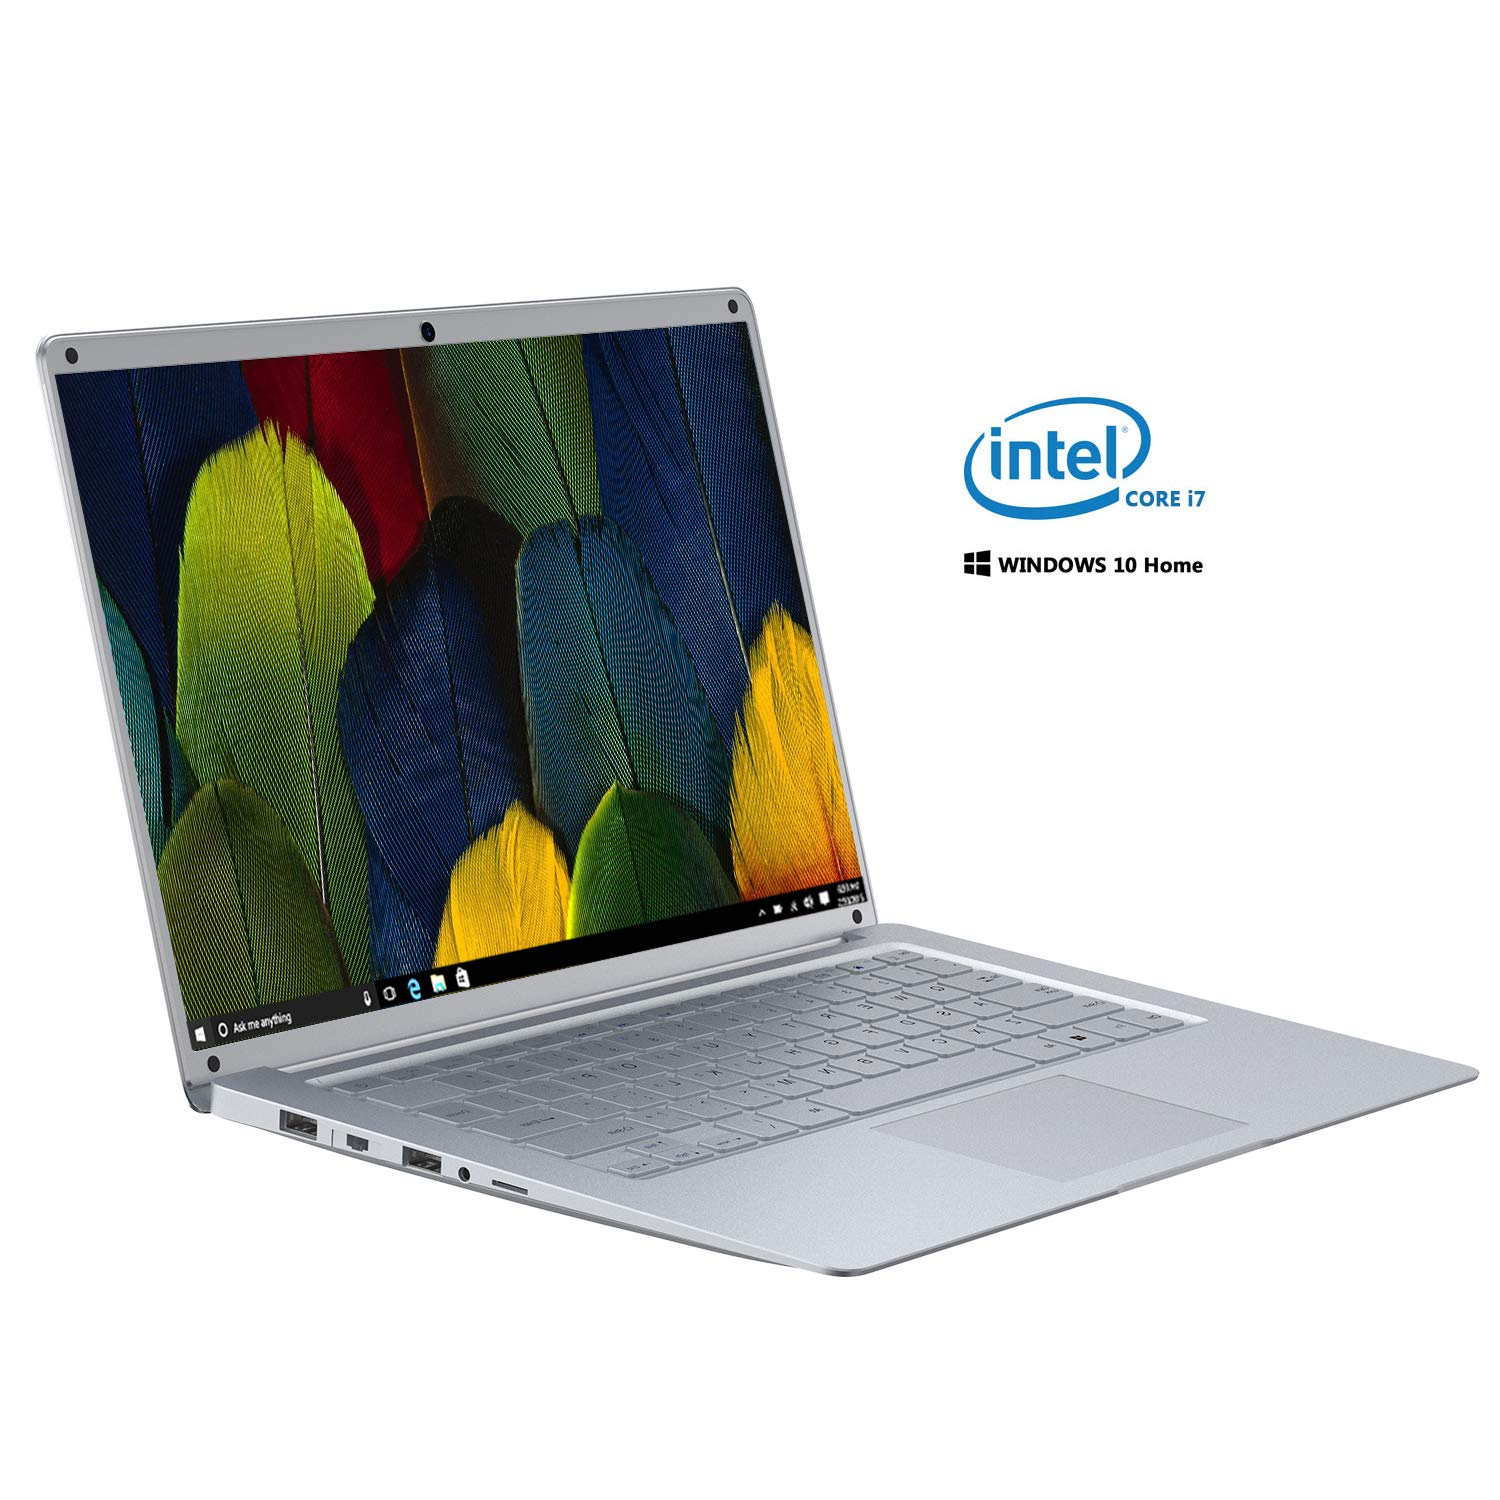 "Ordenador Portatil Intel Atom Z8350 Ultrabook 14.1""IPS/HD(Notebook Intel Core i7, 2GB RAM, 128GB SSD, Windows 10, Intel HD Graphics 500,"